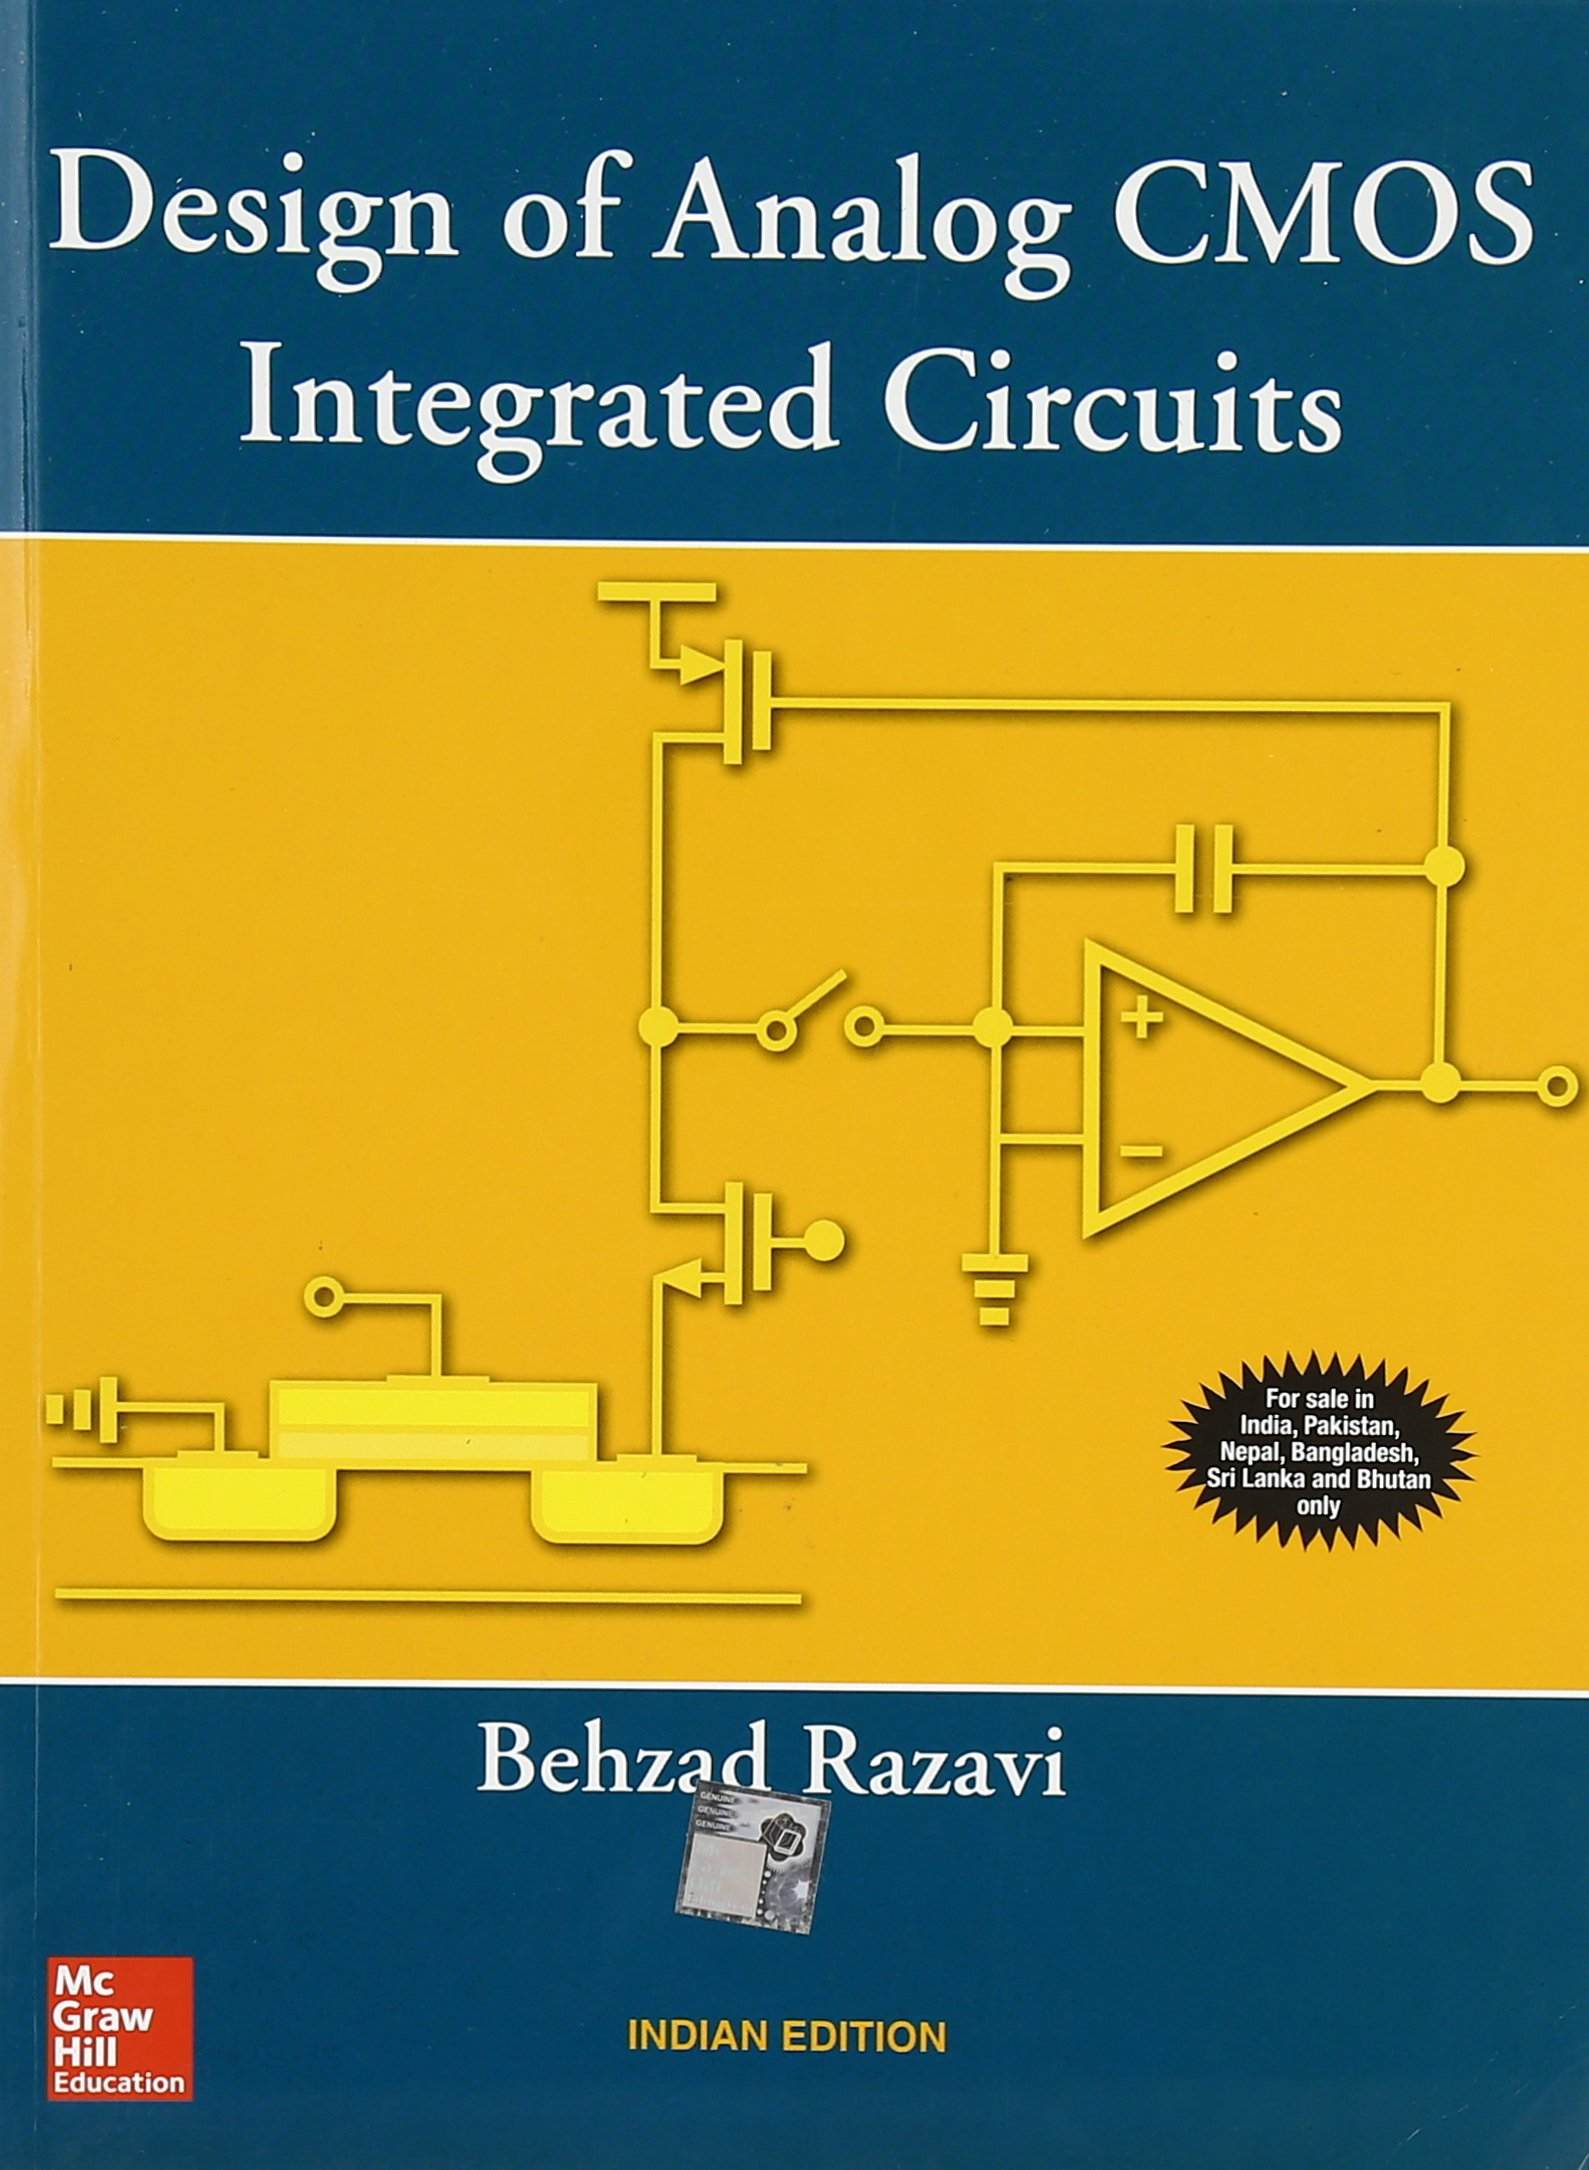 Buy Design Of Analog Cmos Integrated Circuits Book Online At Low Electronic Circuit Software For Mobile Prices In India Reviews Ratings